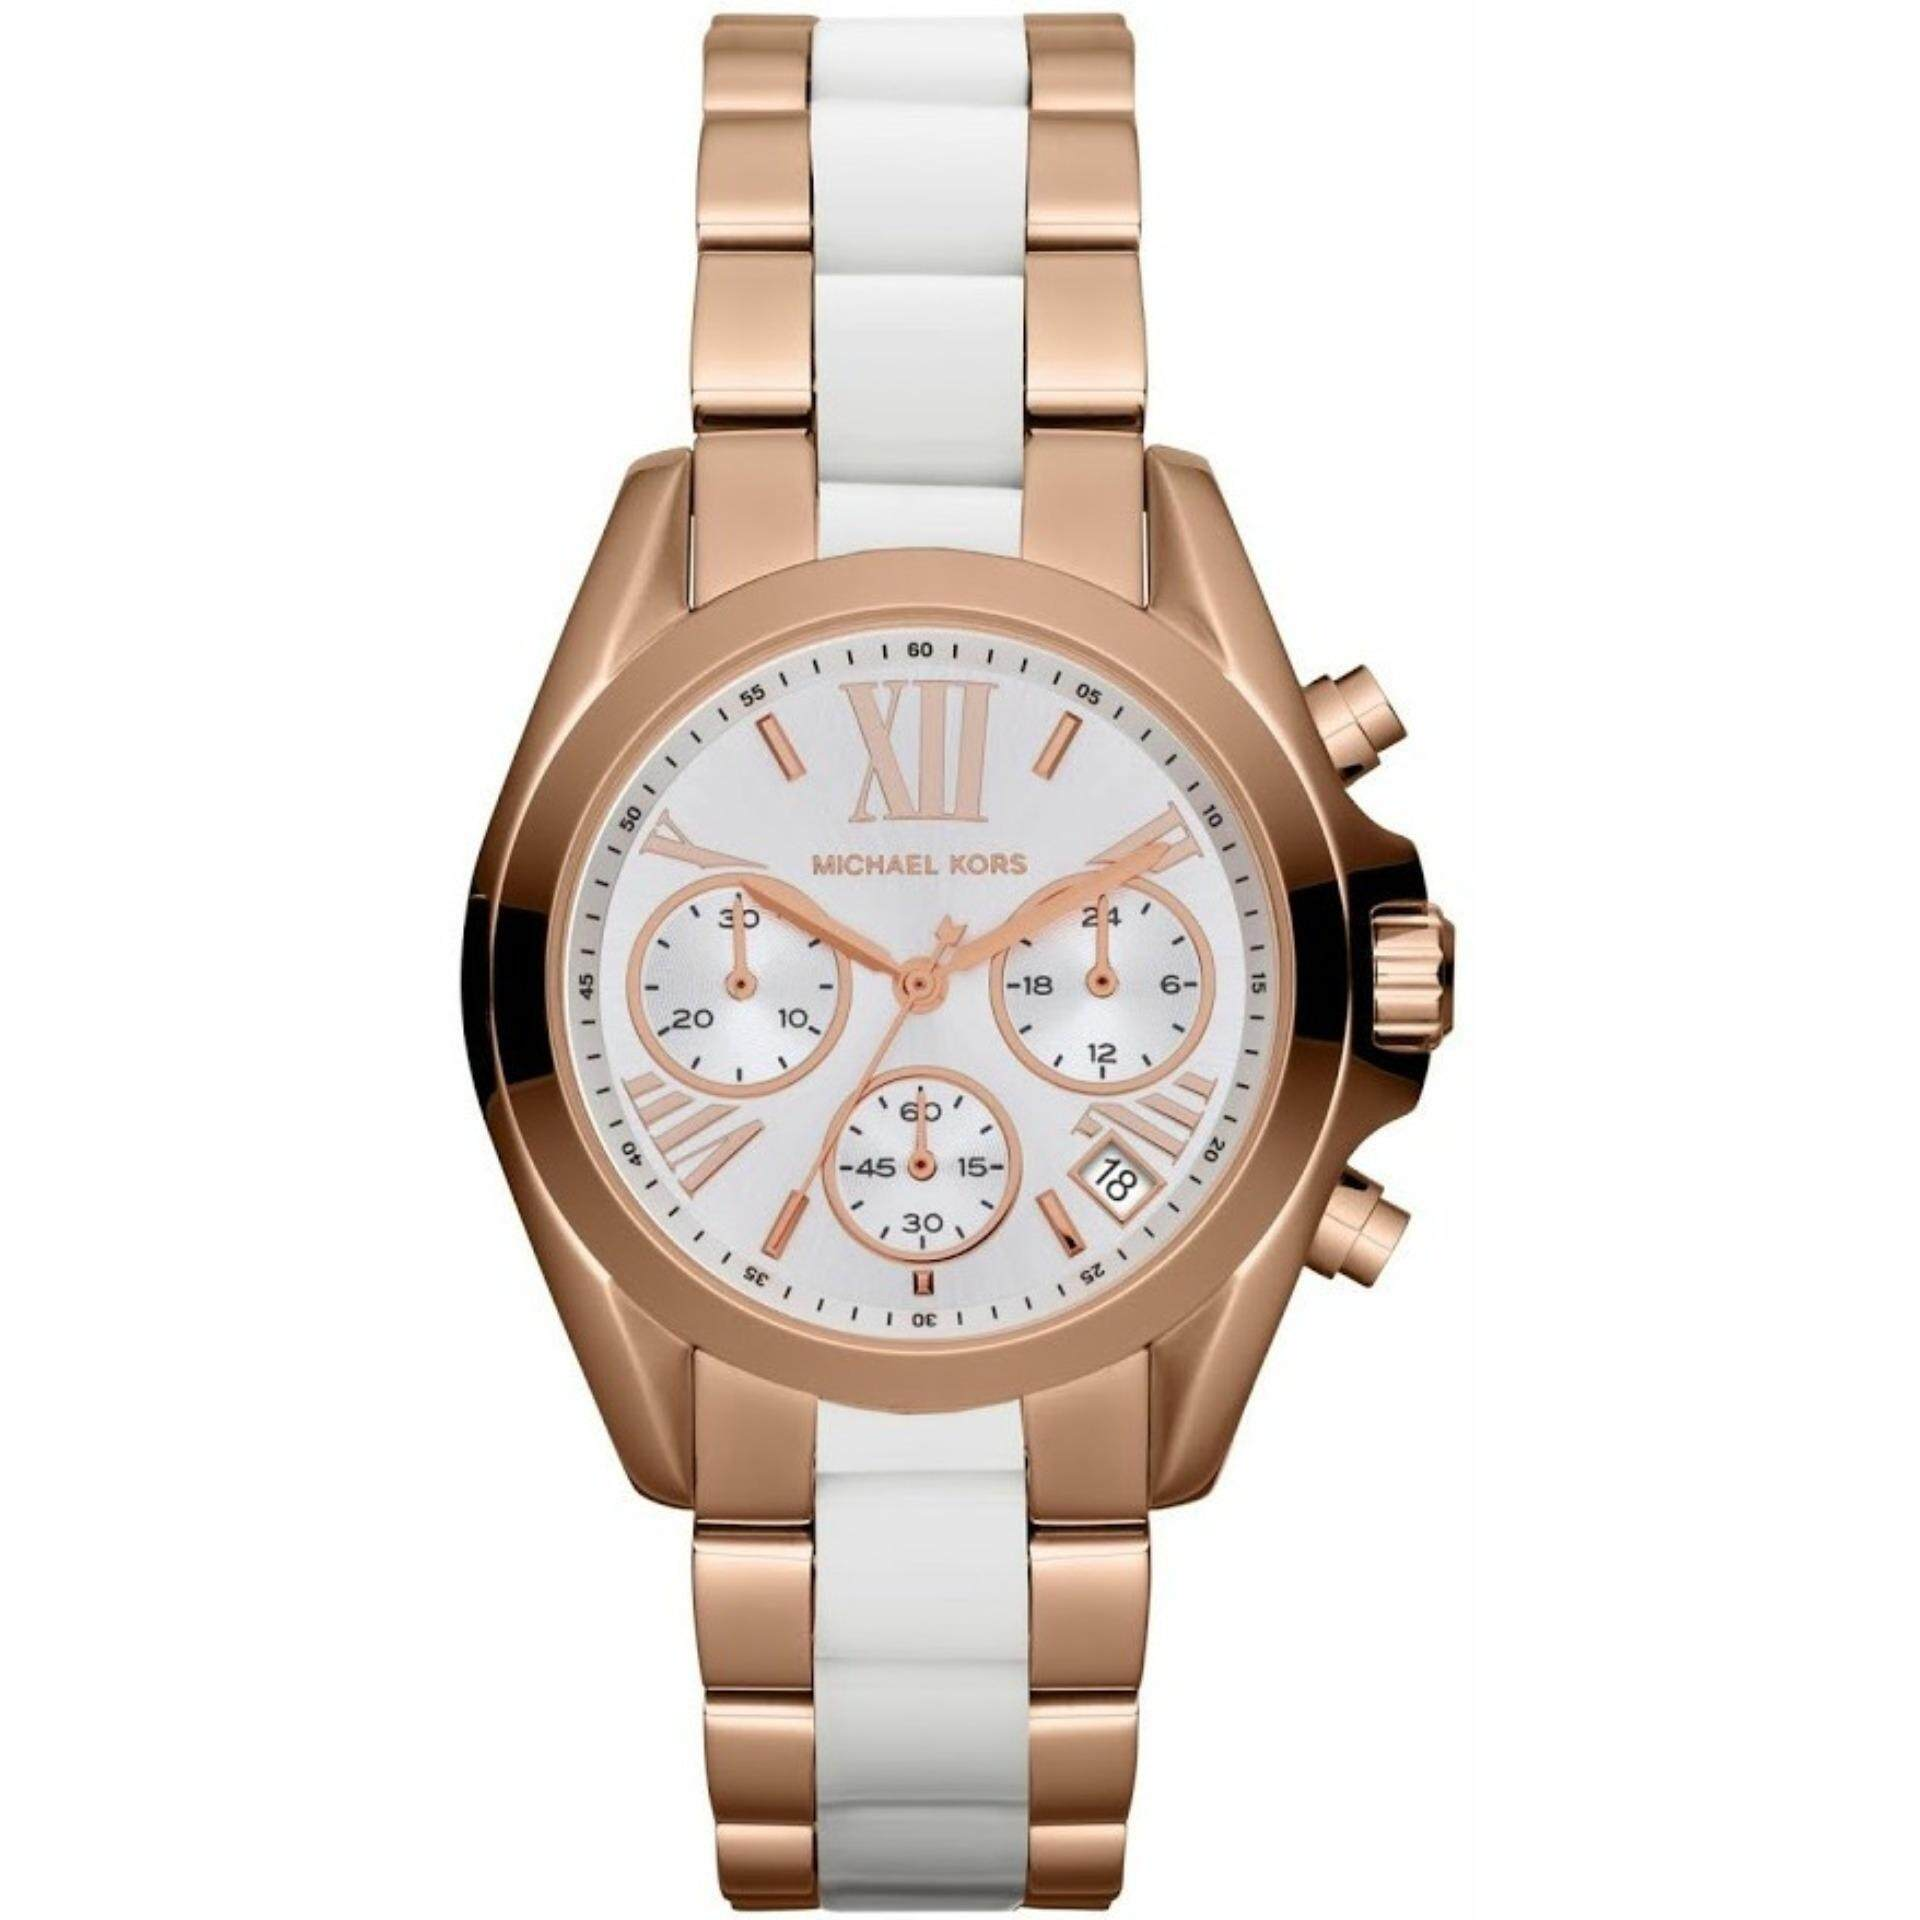 98c0224fcba8 Michael Kors Women s Bradshaw Chrono White Dial Two Tone Watch MK5907